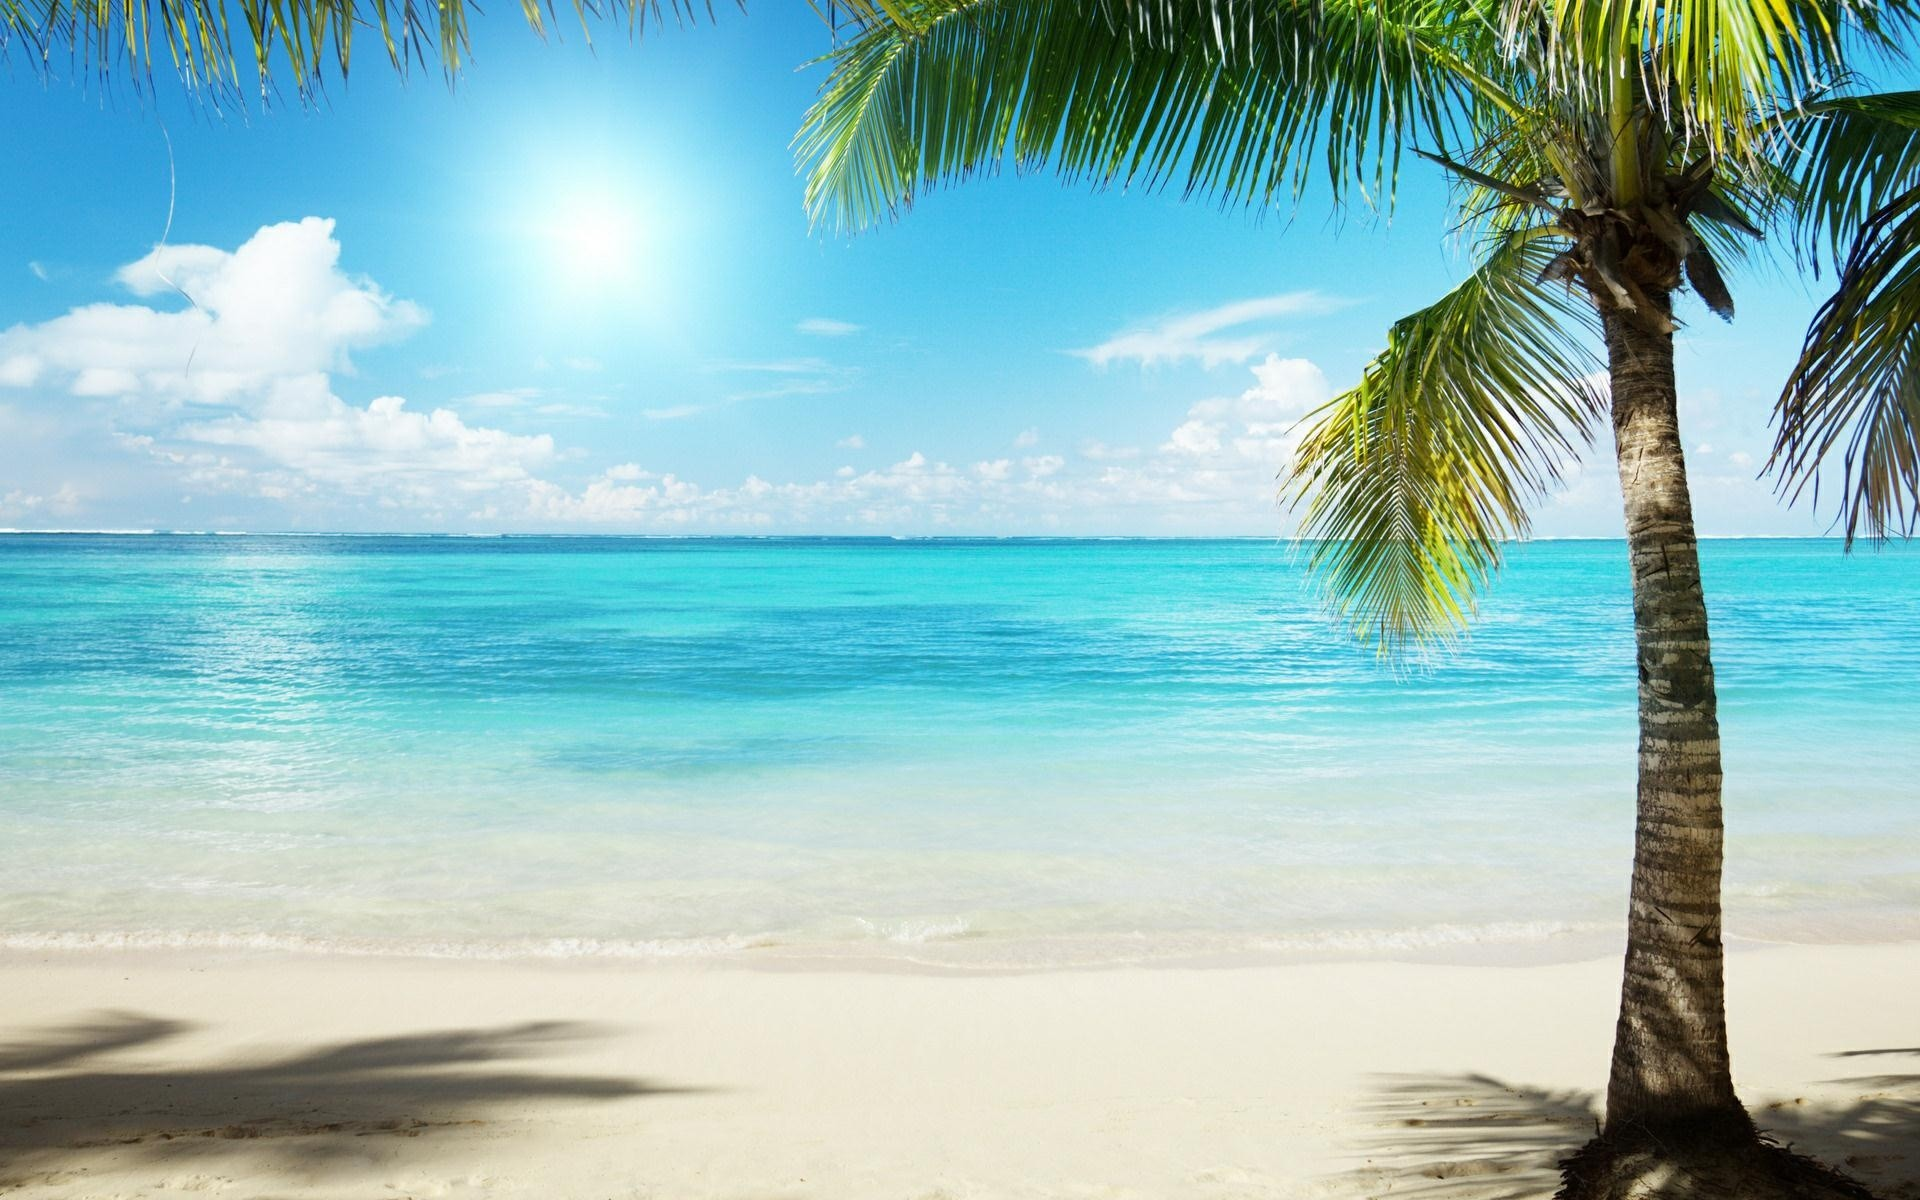 Amazing Wallpaper Macbook Beach - 527631-tropical-beach-background-1920x1200-macbook  Collection_672665.jpg